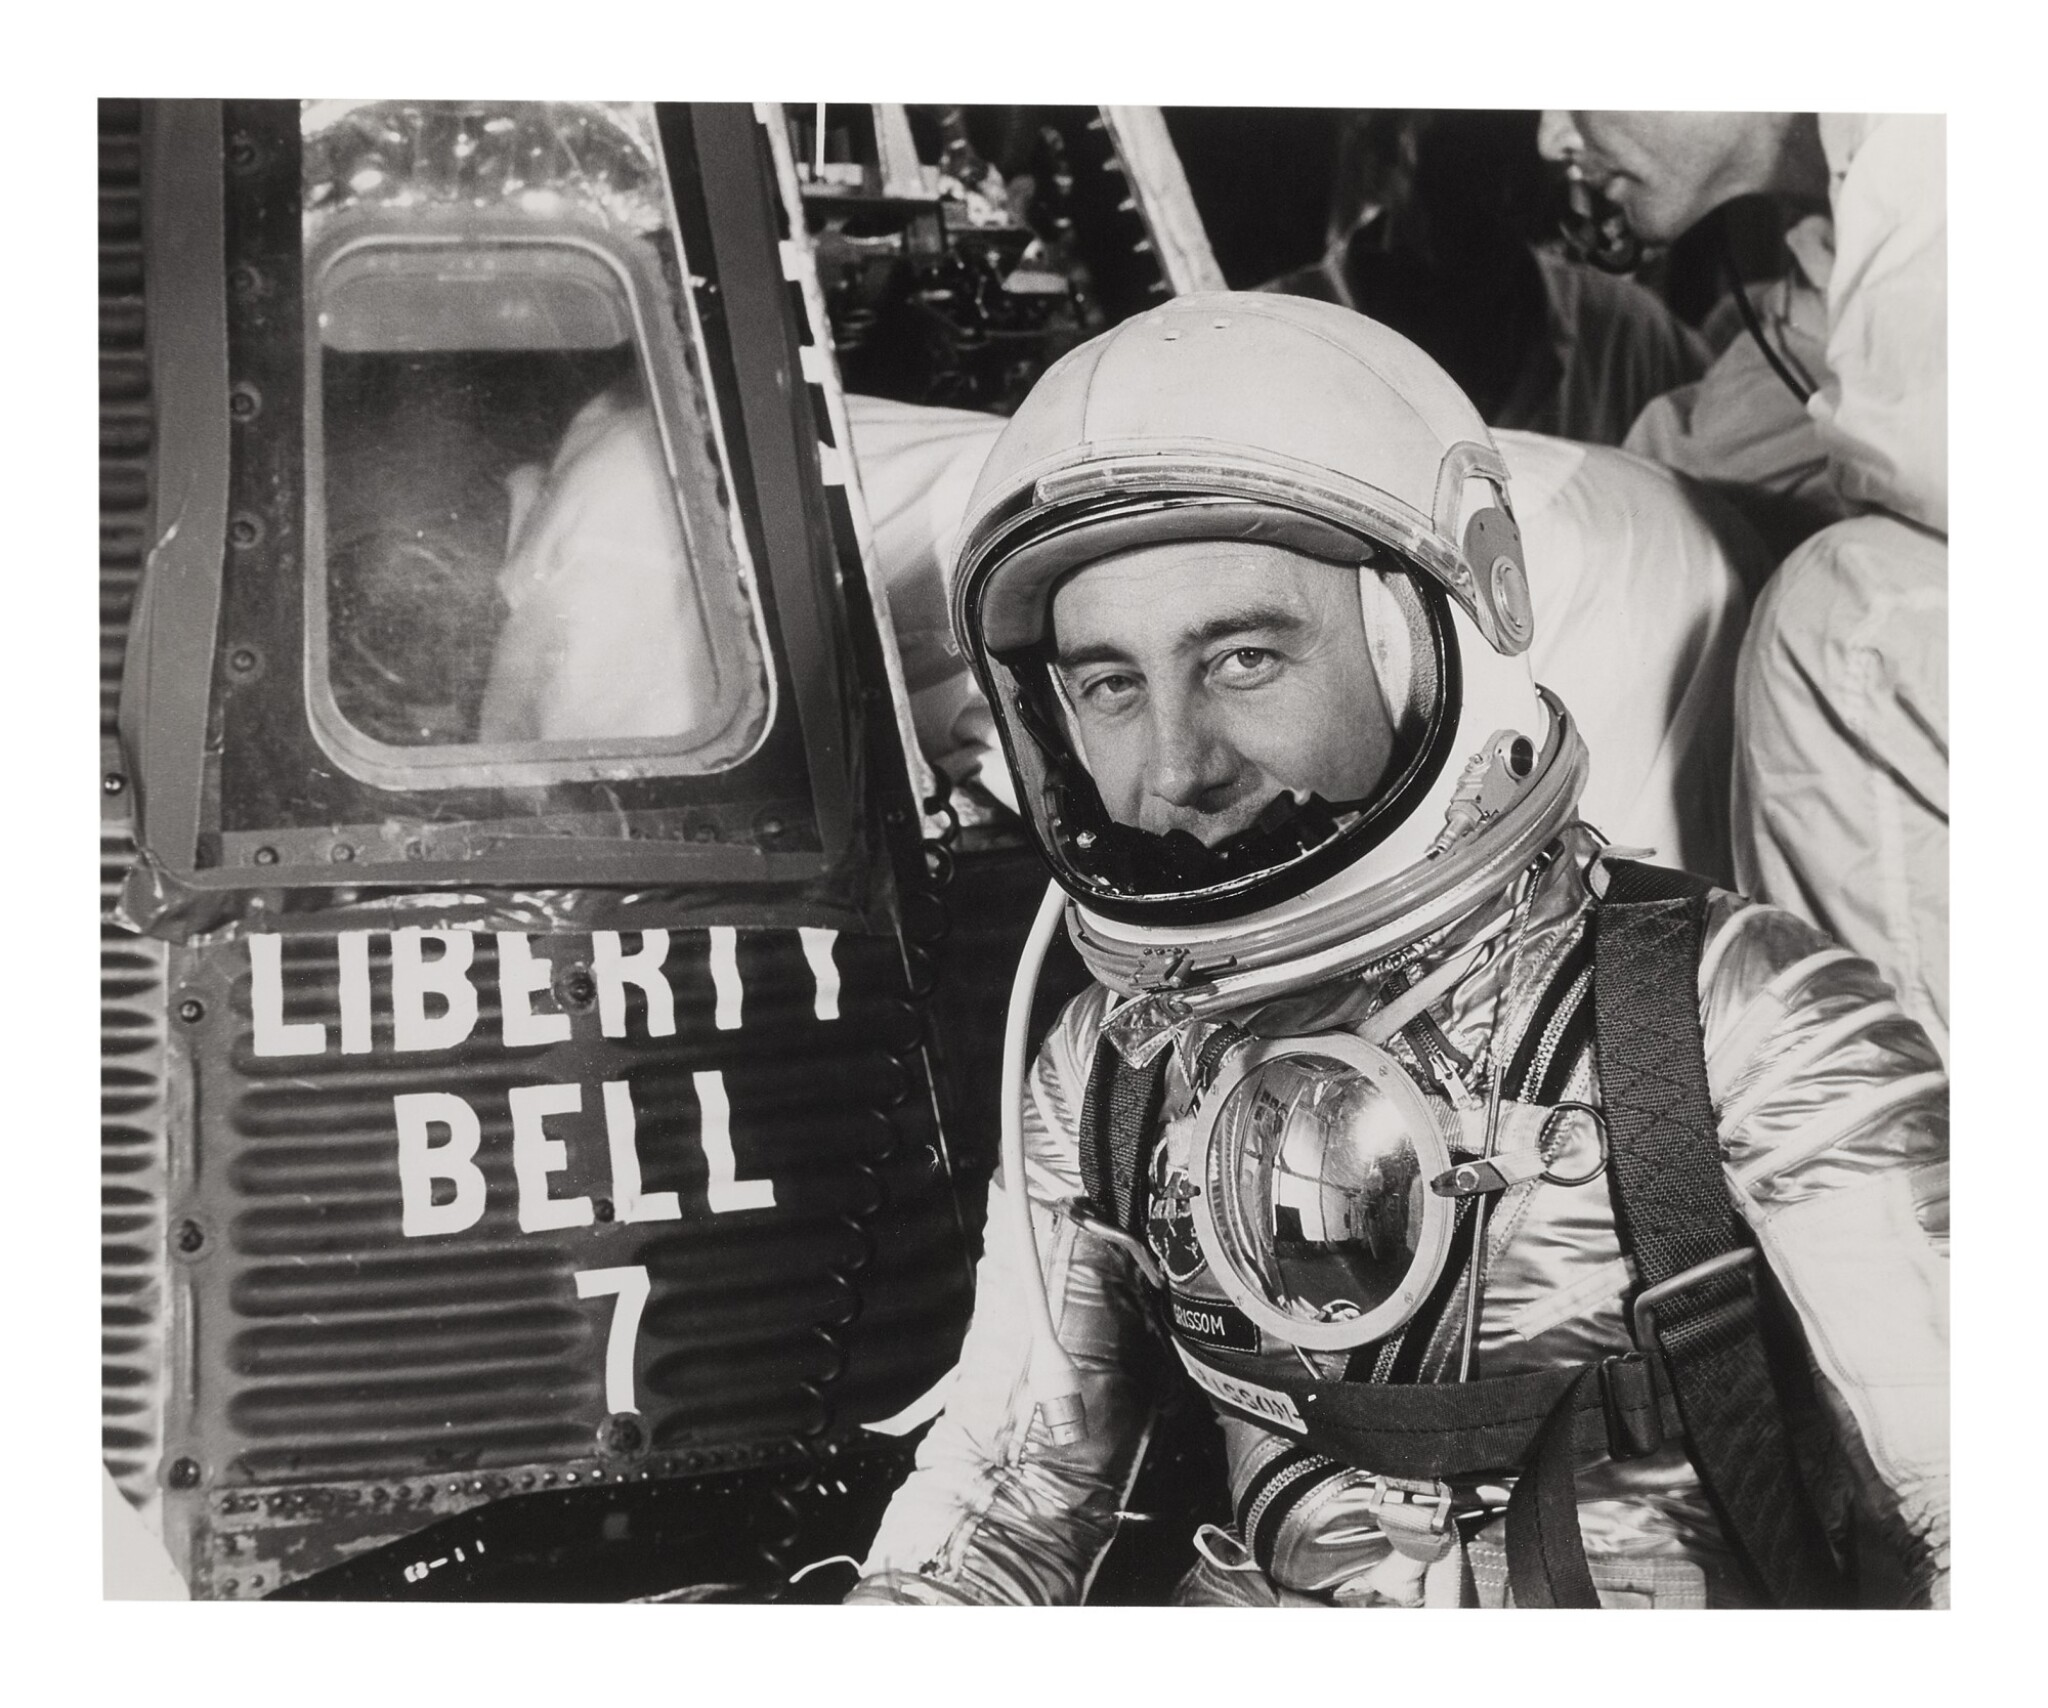 [MERCURY-REDSTONE 4] VINTAGE SILVER GELATIN PRINT OF GUS GRISSOM WITH THE LIBERTY BELL 7, CA JULY 1961.